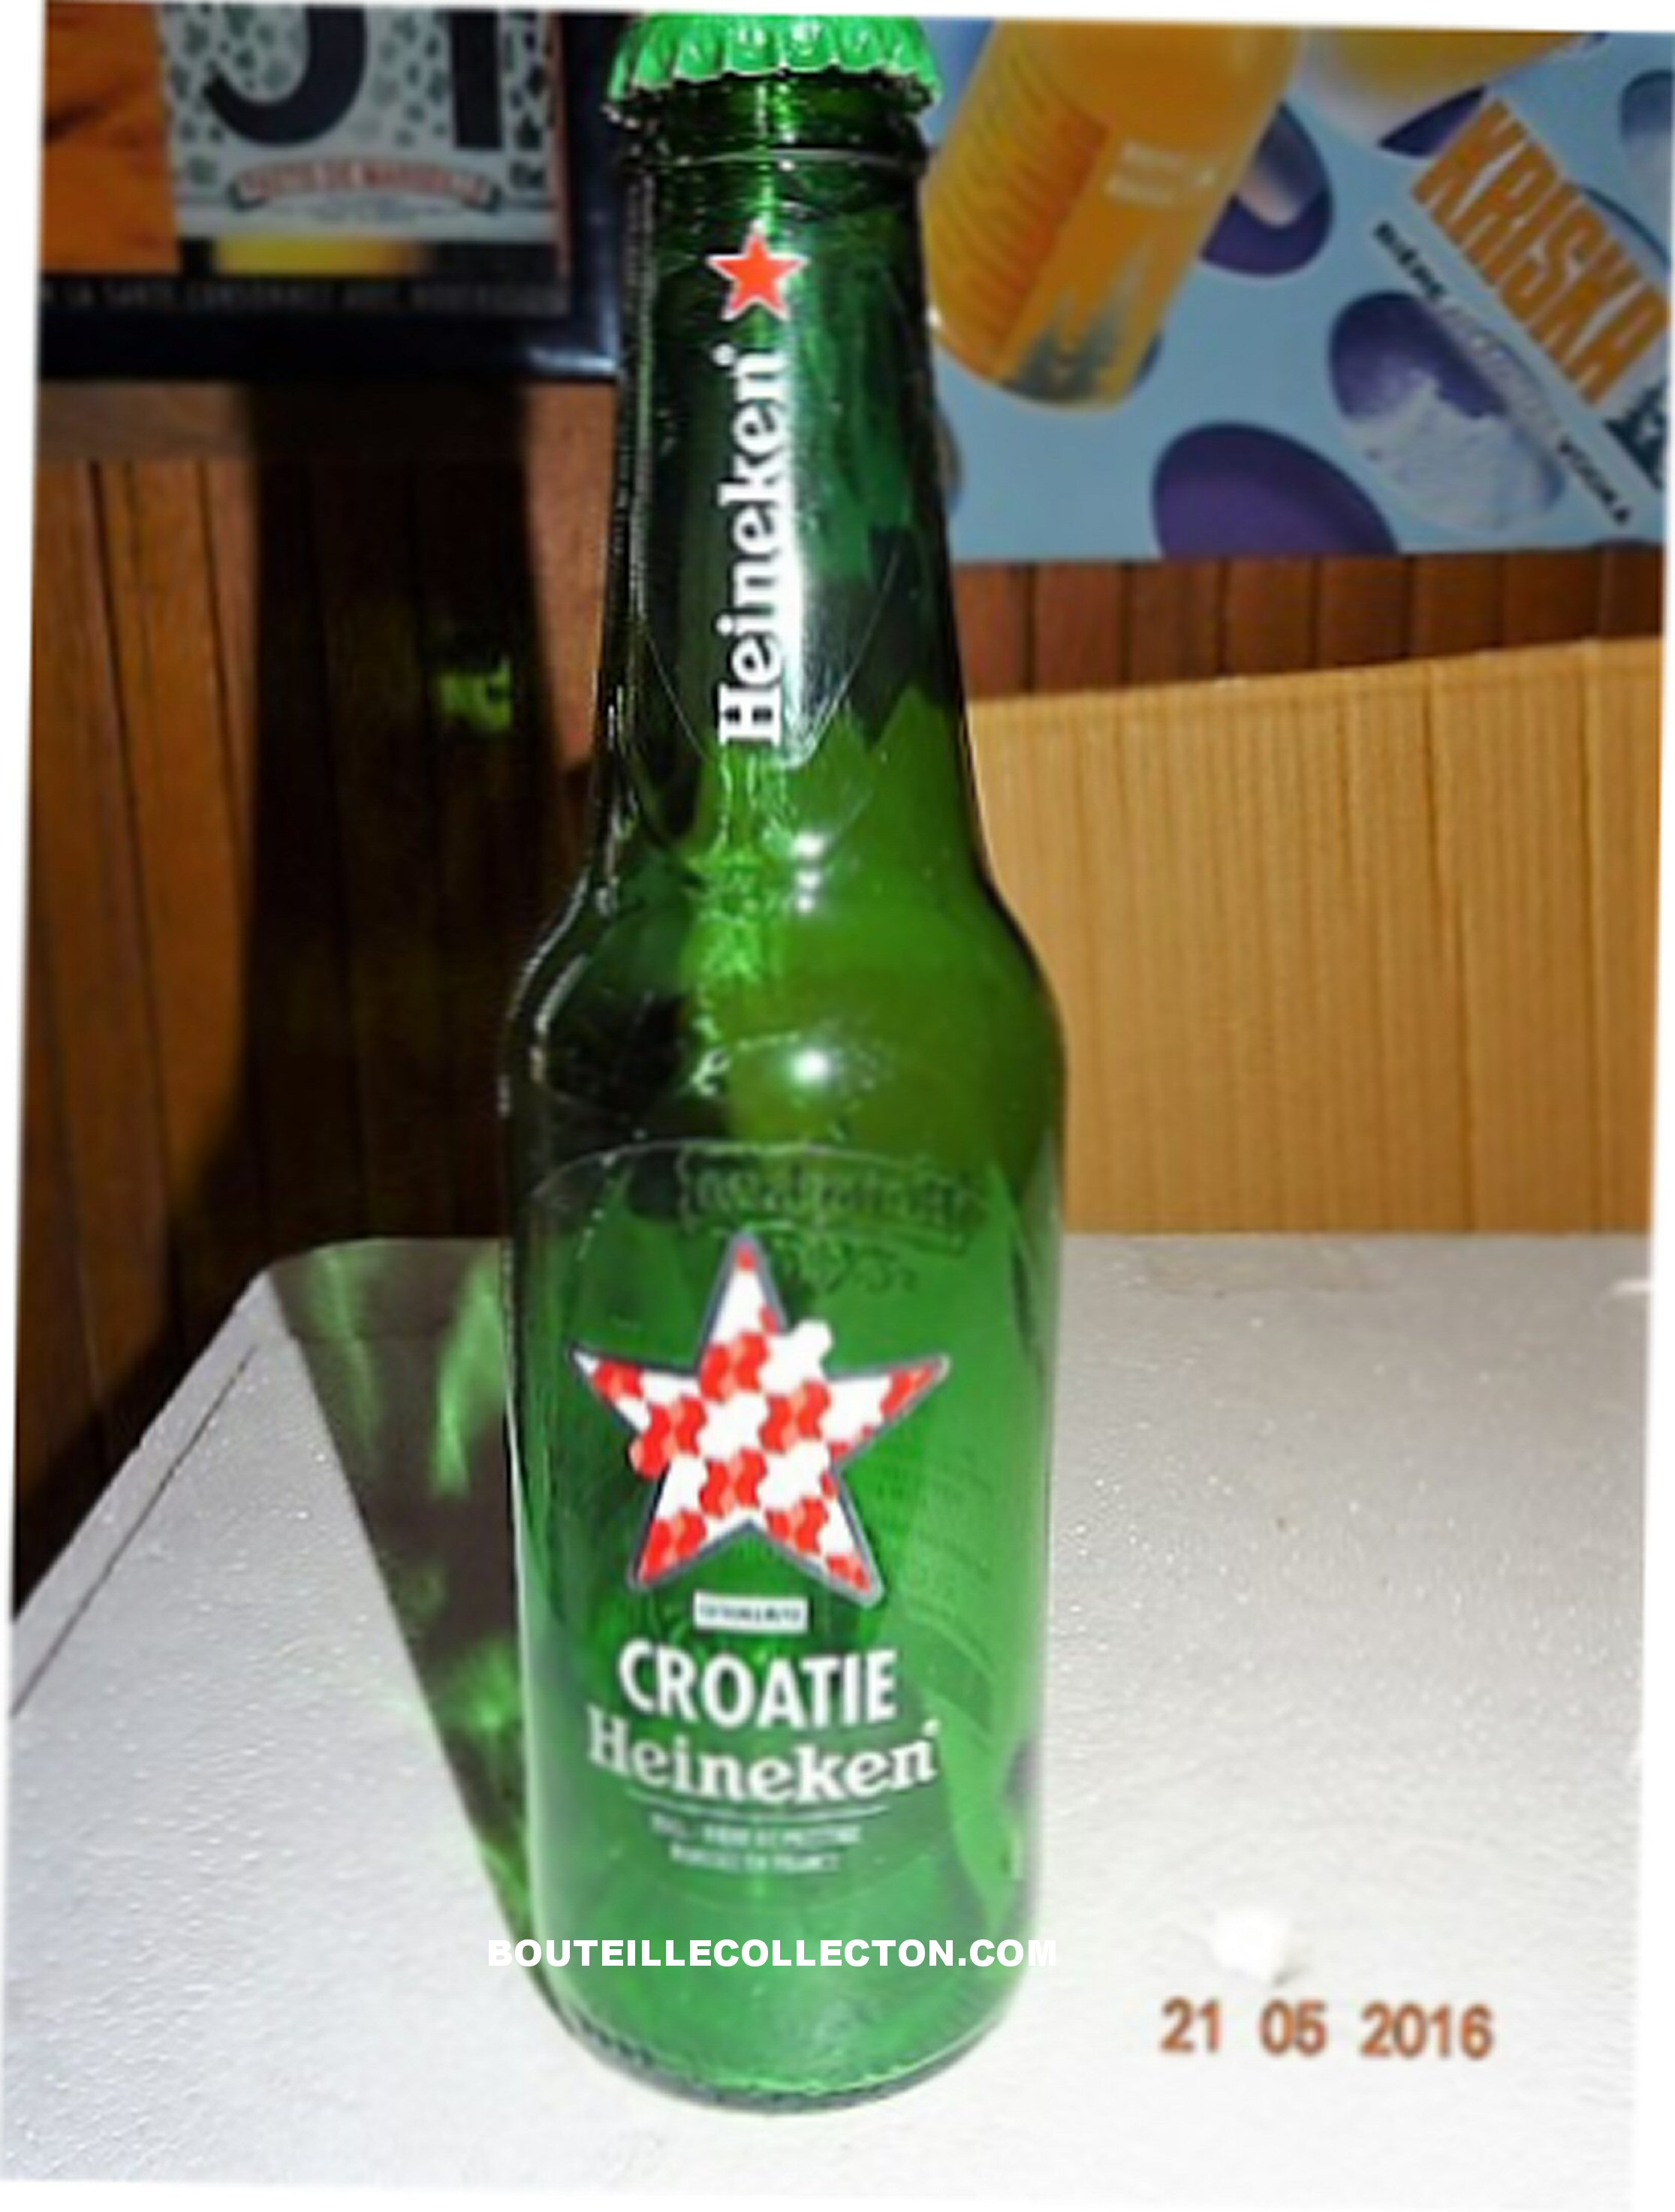 AG HEINEKEN COUNTRIES EDITION CROATIE 2016 25CL B.jpg